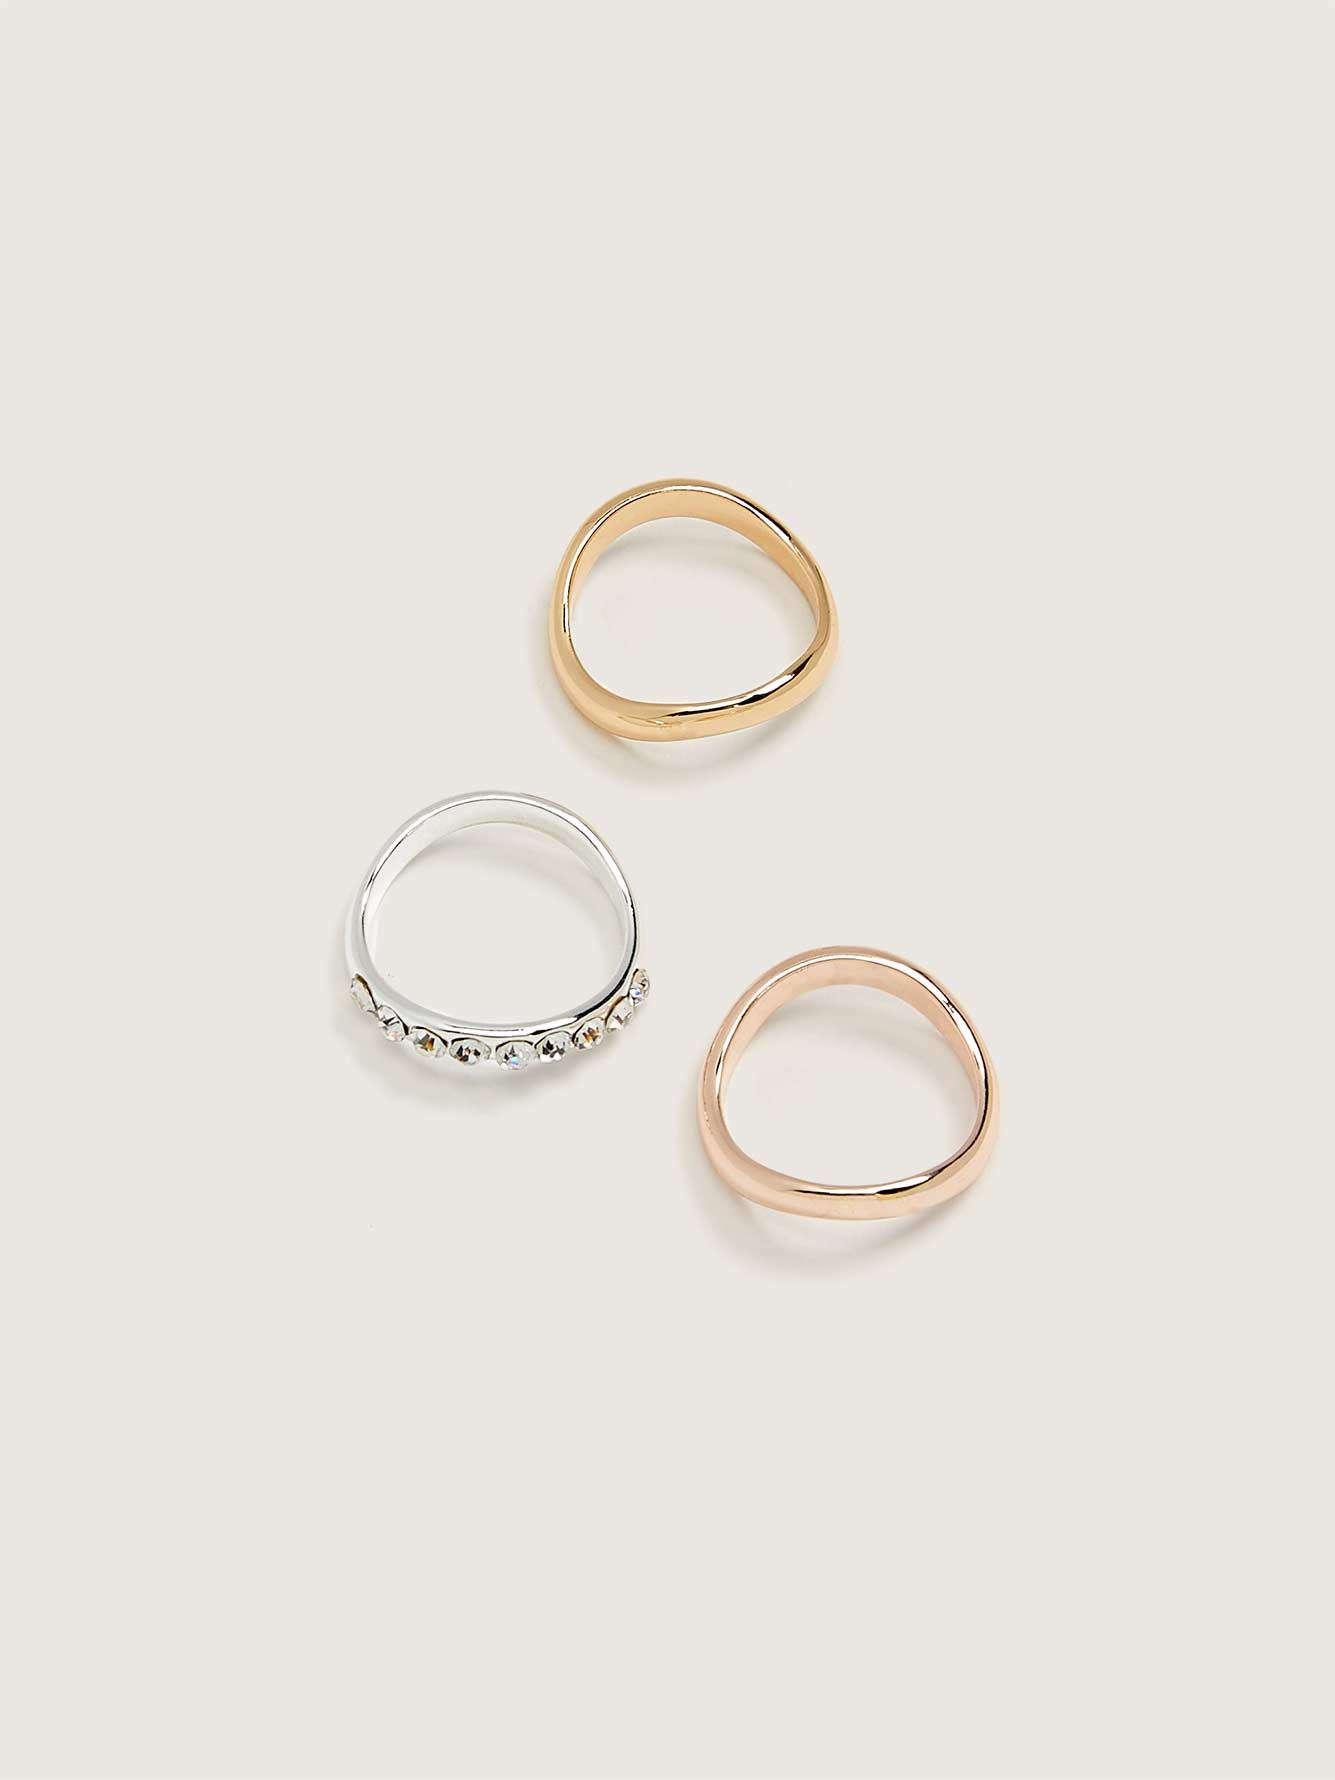 Organic Rings, 3-Pack - Addition Elle